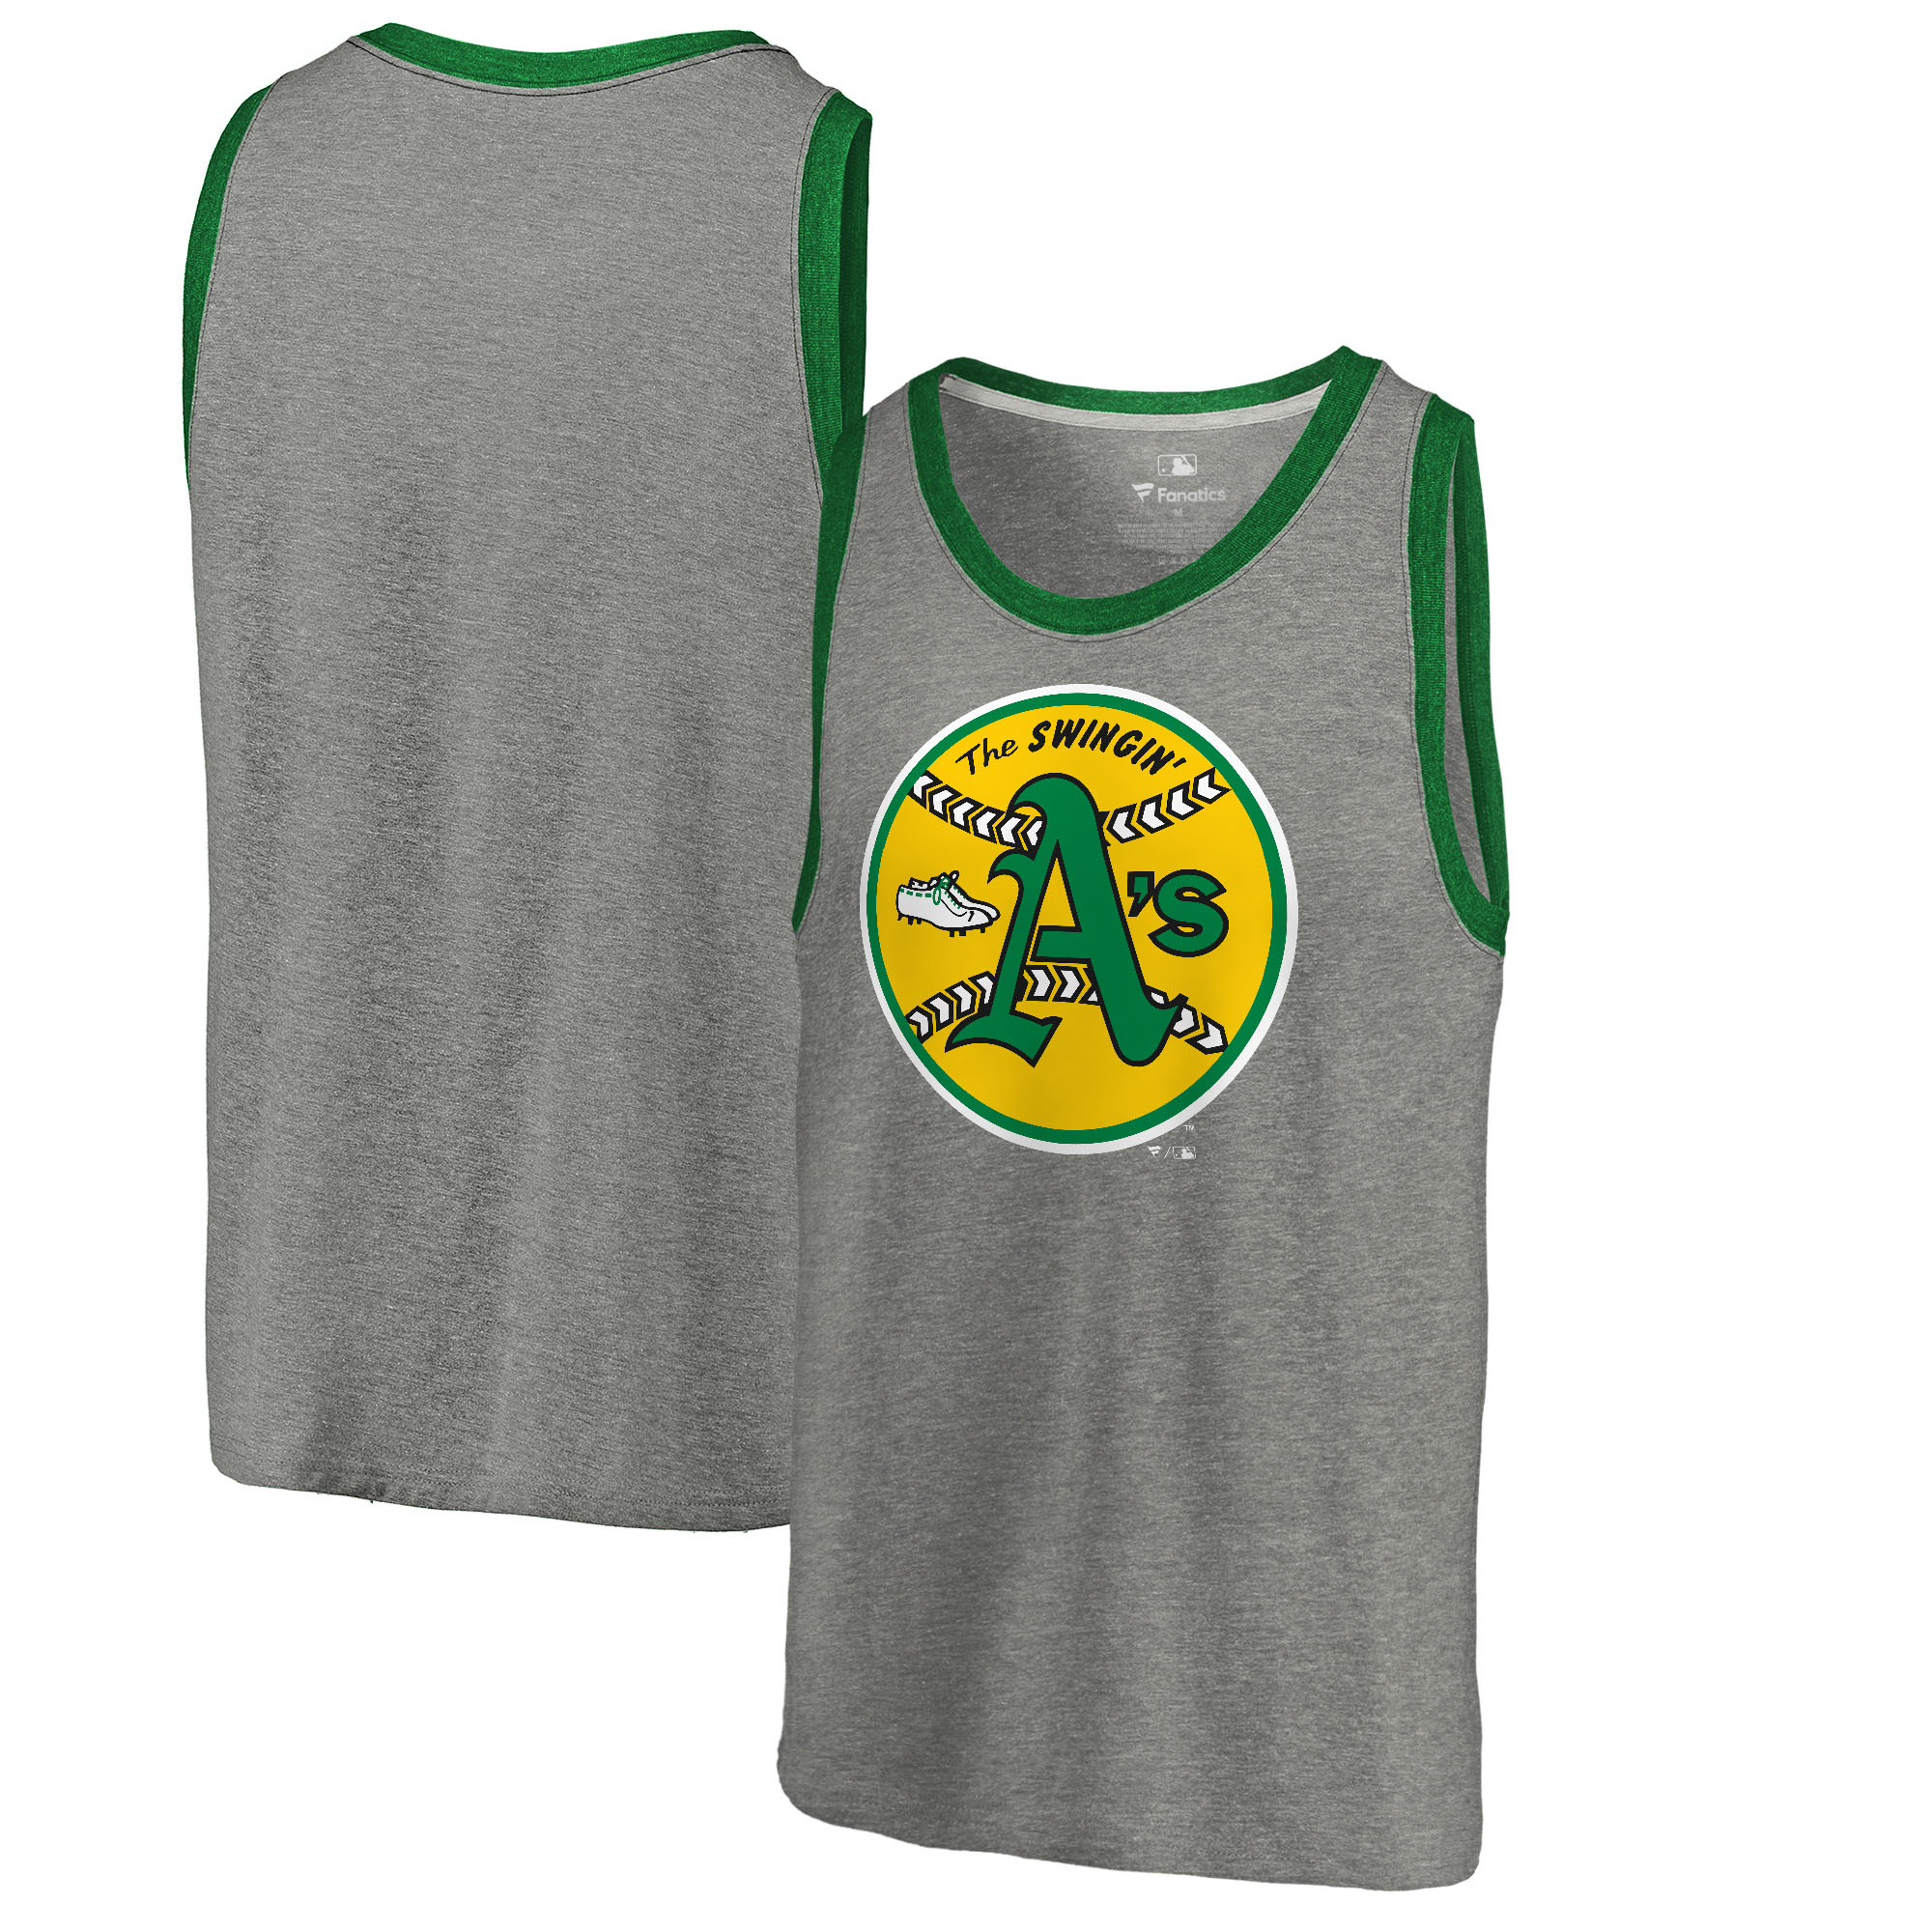 Oakland Athletics Fanatics Branded Cooperstown Collection Huntington Tri-Blend Tank Top - Heathered Gray